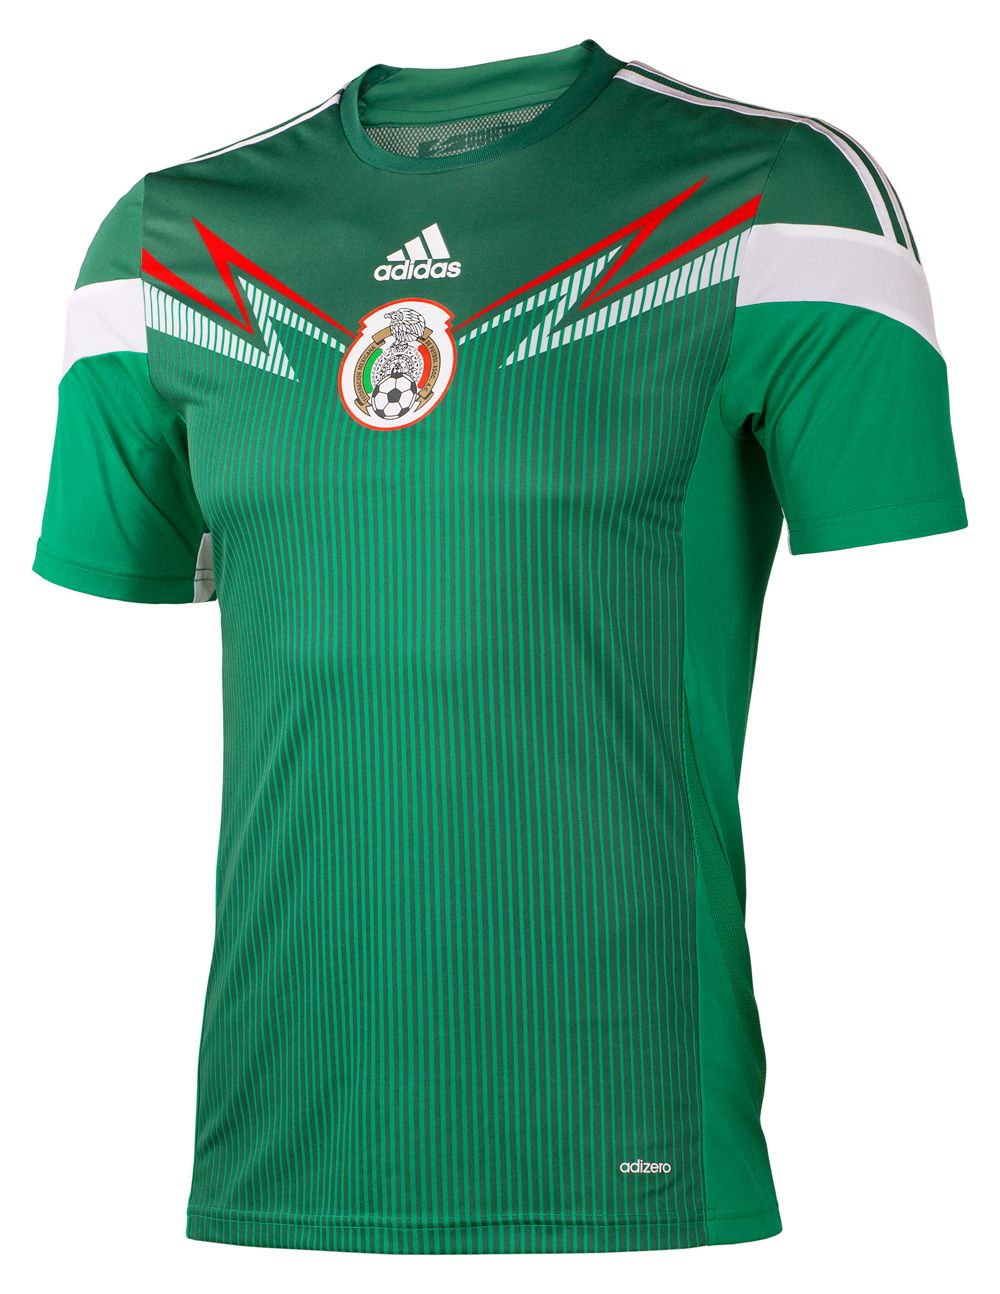 422681aec The new  adidas  Mexico 2014 Home Jersey!